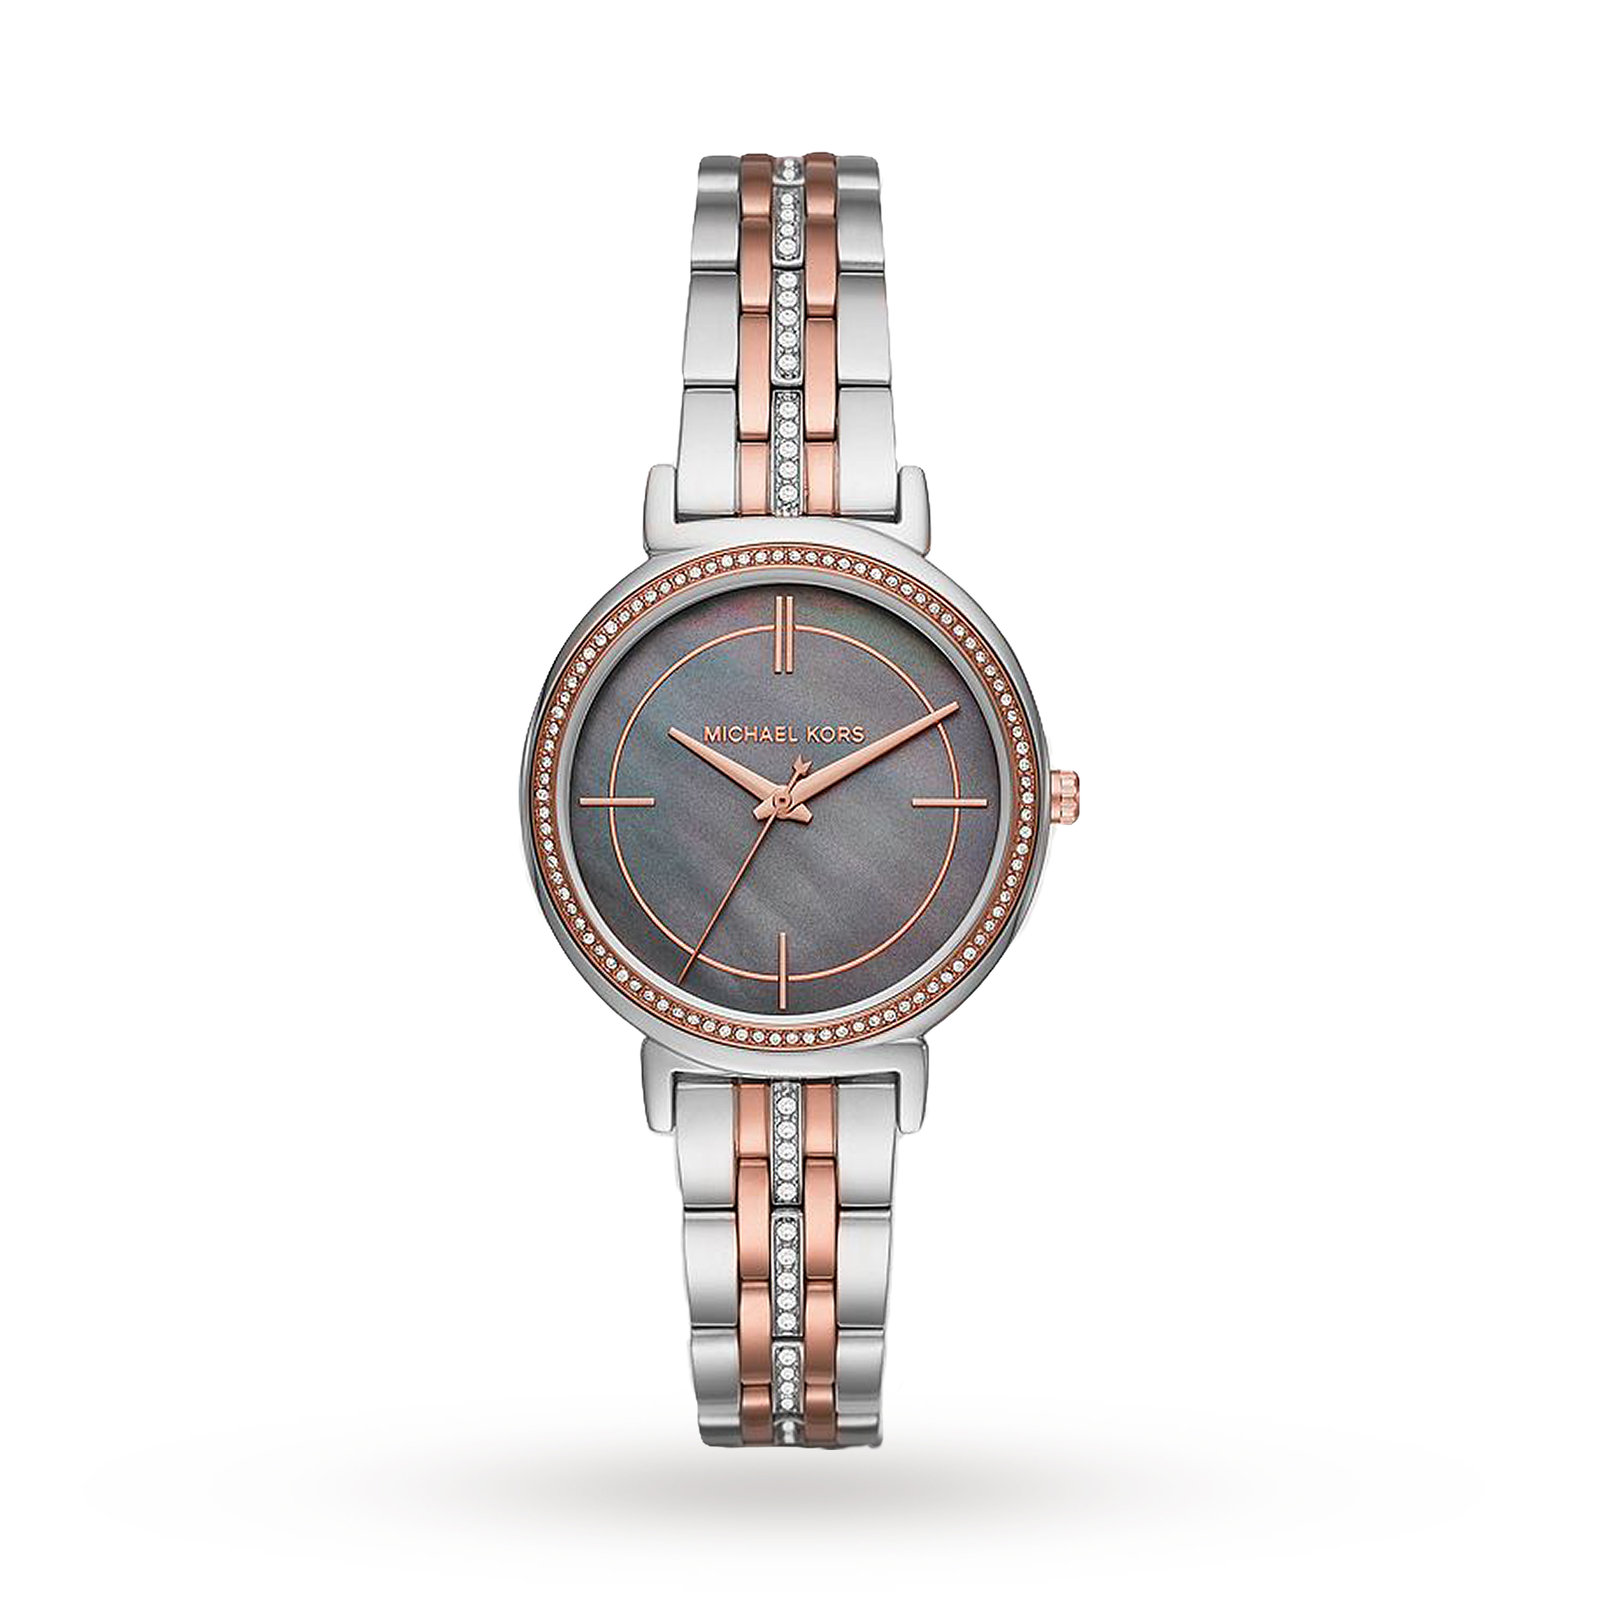 Michael Kors Cinthia Two-Tone Three-Hand Watch